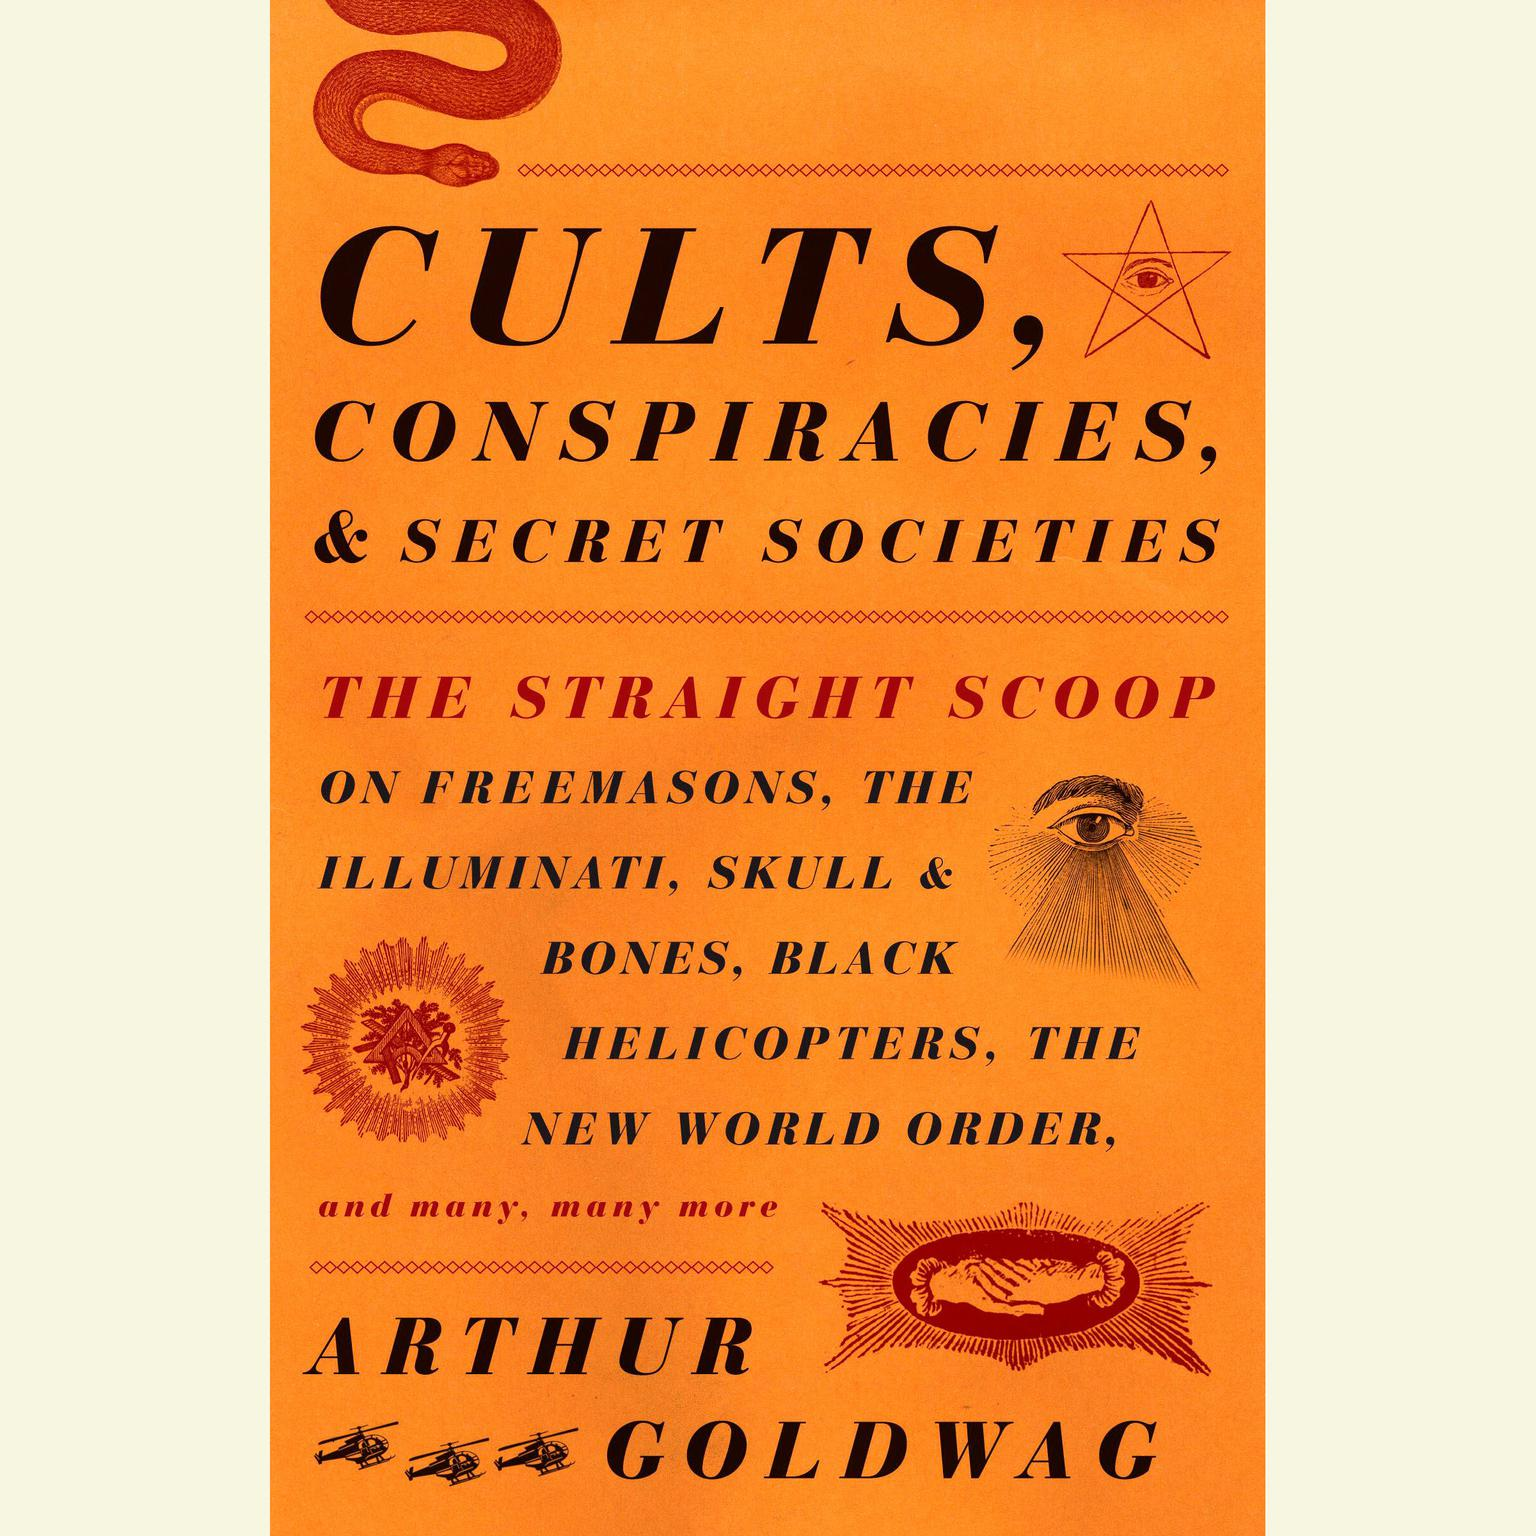 Printable Cults, Conspiracies, and Secret Societies: The Straight Scoop on Freemasons, The Illuminati, Skull and Bones, Black Helicopters, The New World Order, and many, many more Audiobook Cover Art